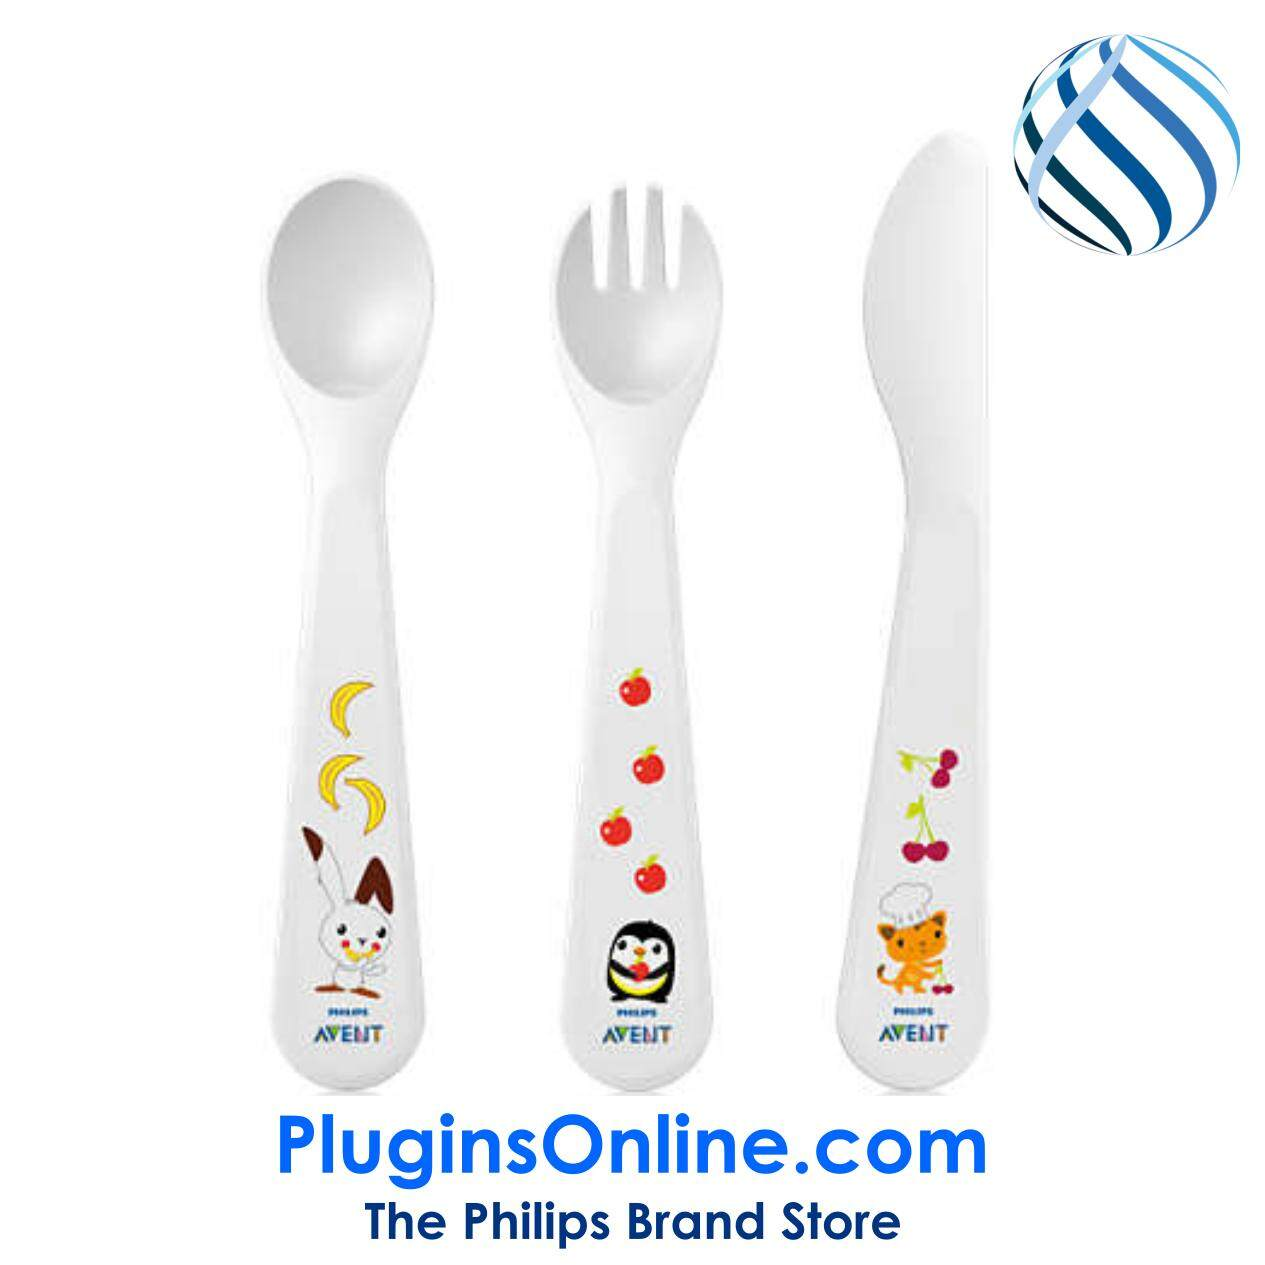 Philips Avent SCF714/00 Toddler fork, spoon and knife 18m+